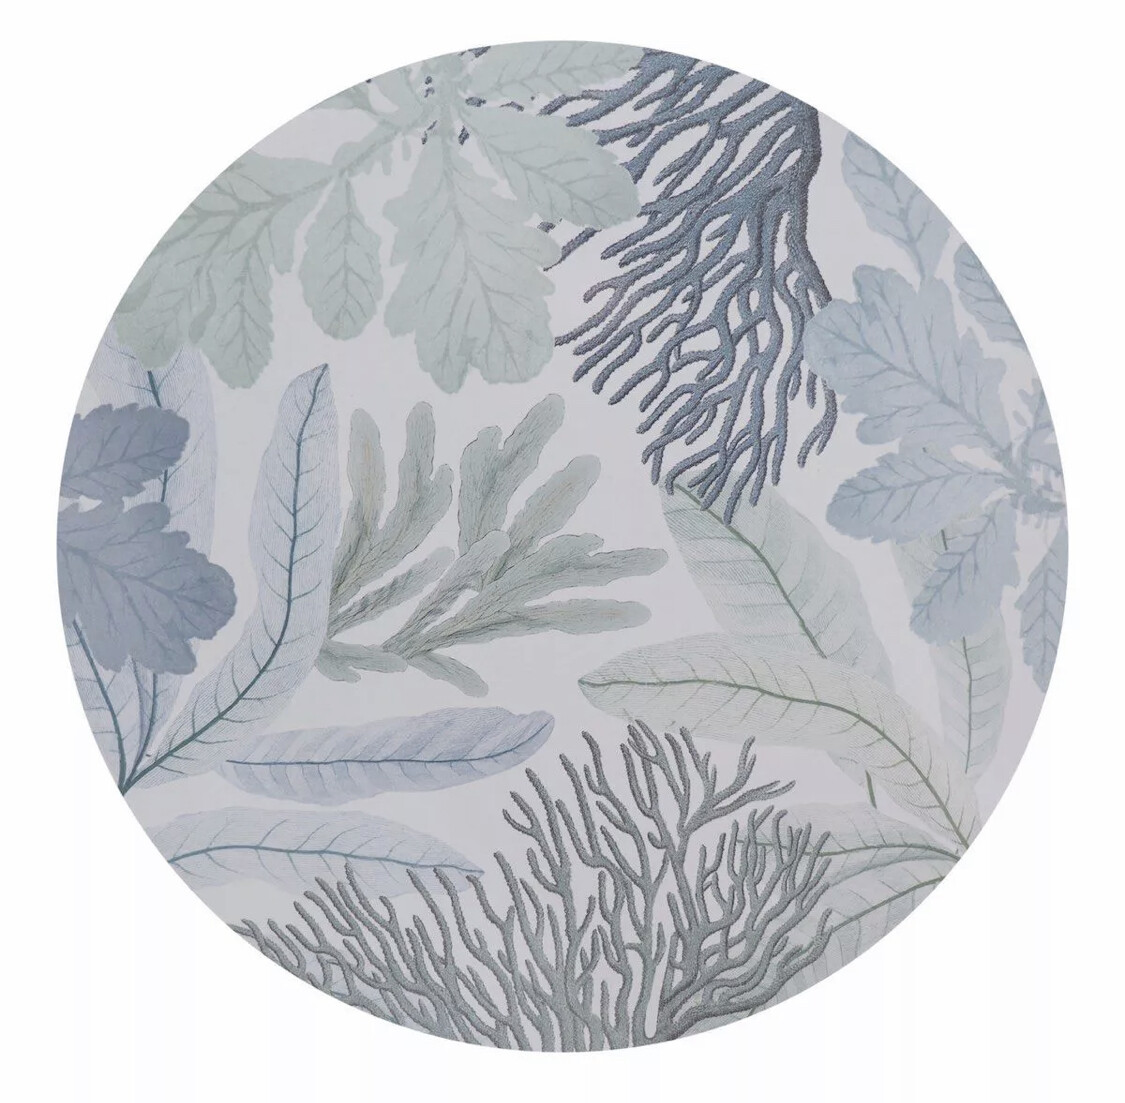 MADRAS LINK Portsea Round Placemat Set of 4